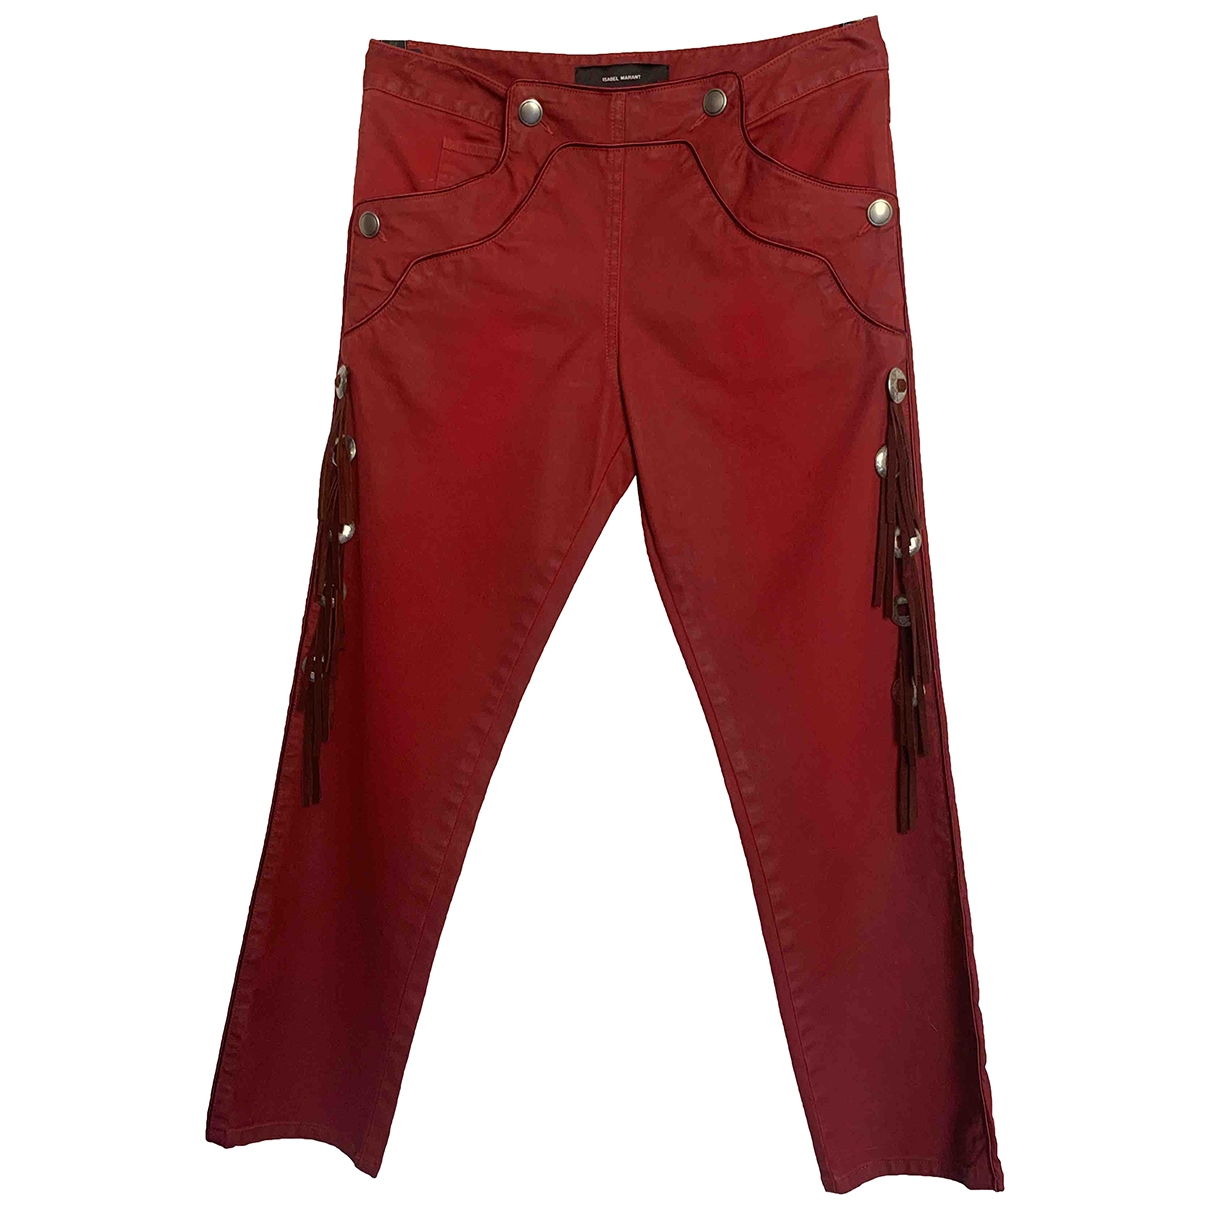 Isabel Marant \N Burgundy Cotton Trousers for Women 38 FR